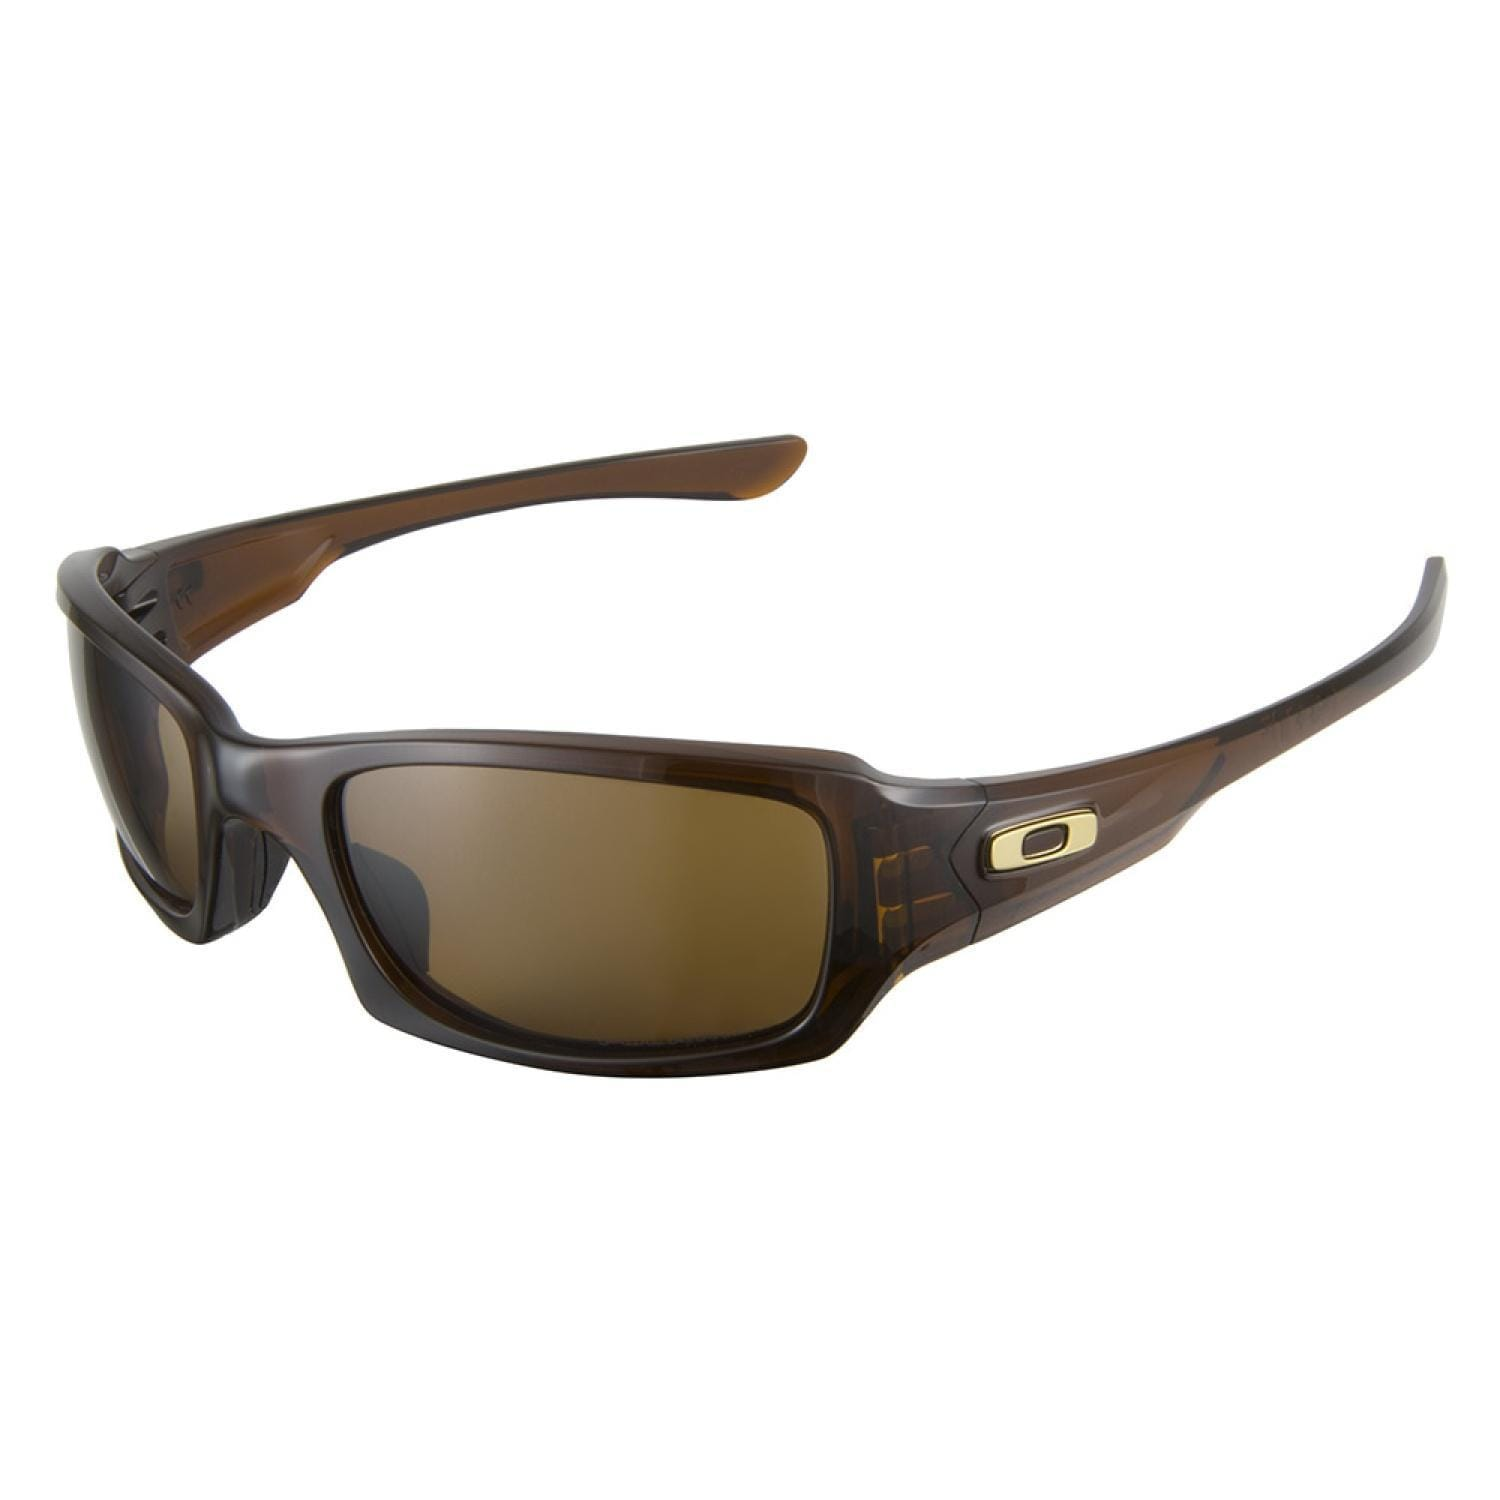 62c391193c Oakley Five Squared 9238 08 Rootbeer Polarized 54 Sunglasses on ...